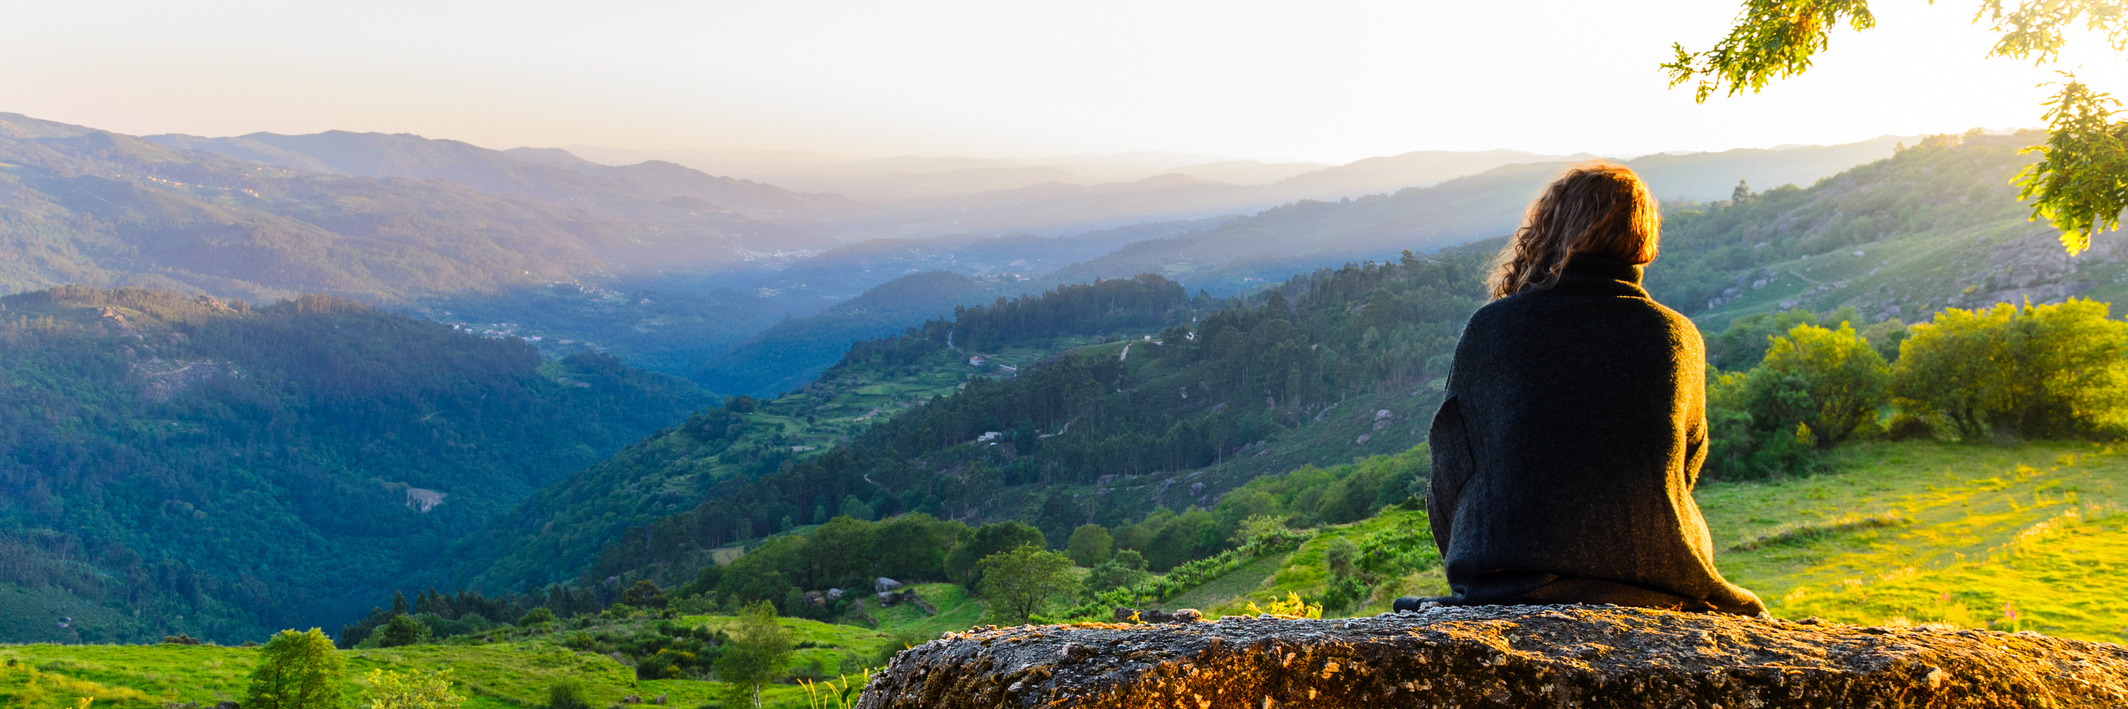 scenic view at Peneda-Geres National Park, northern Portugal of woman watching sunset over valley